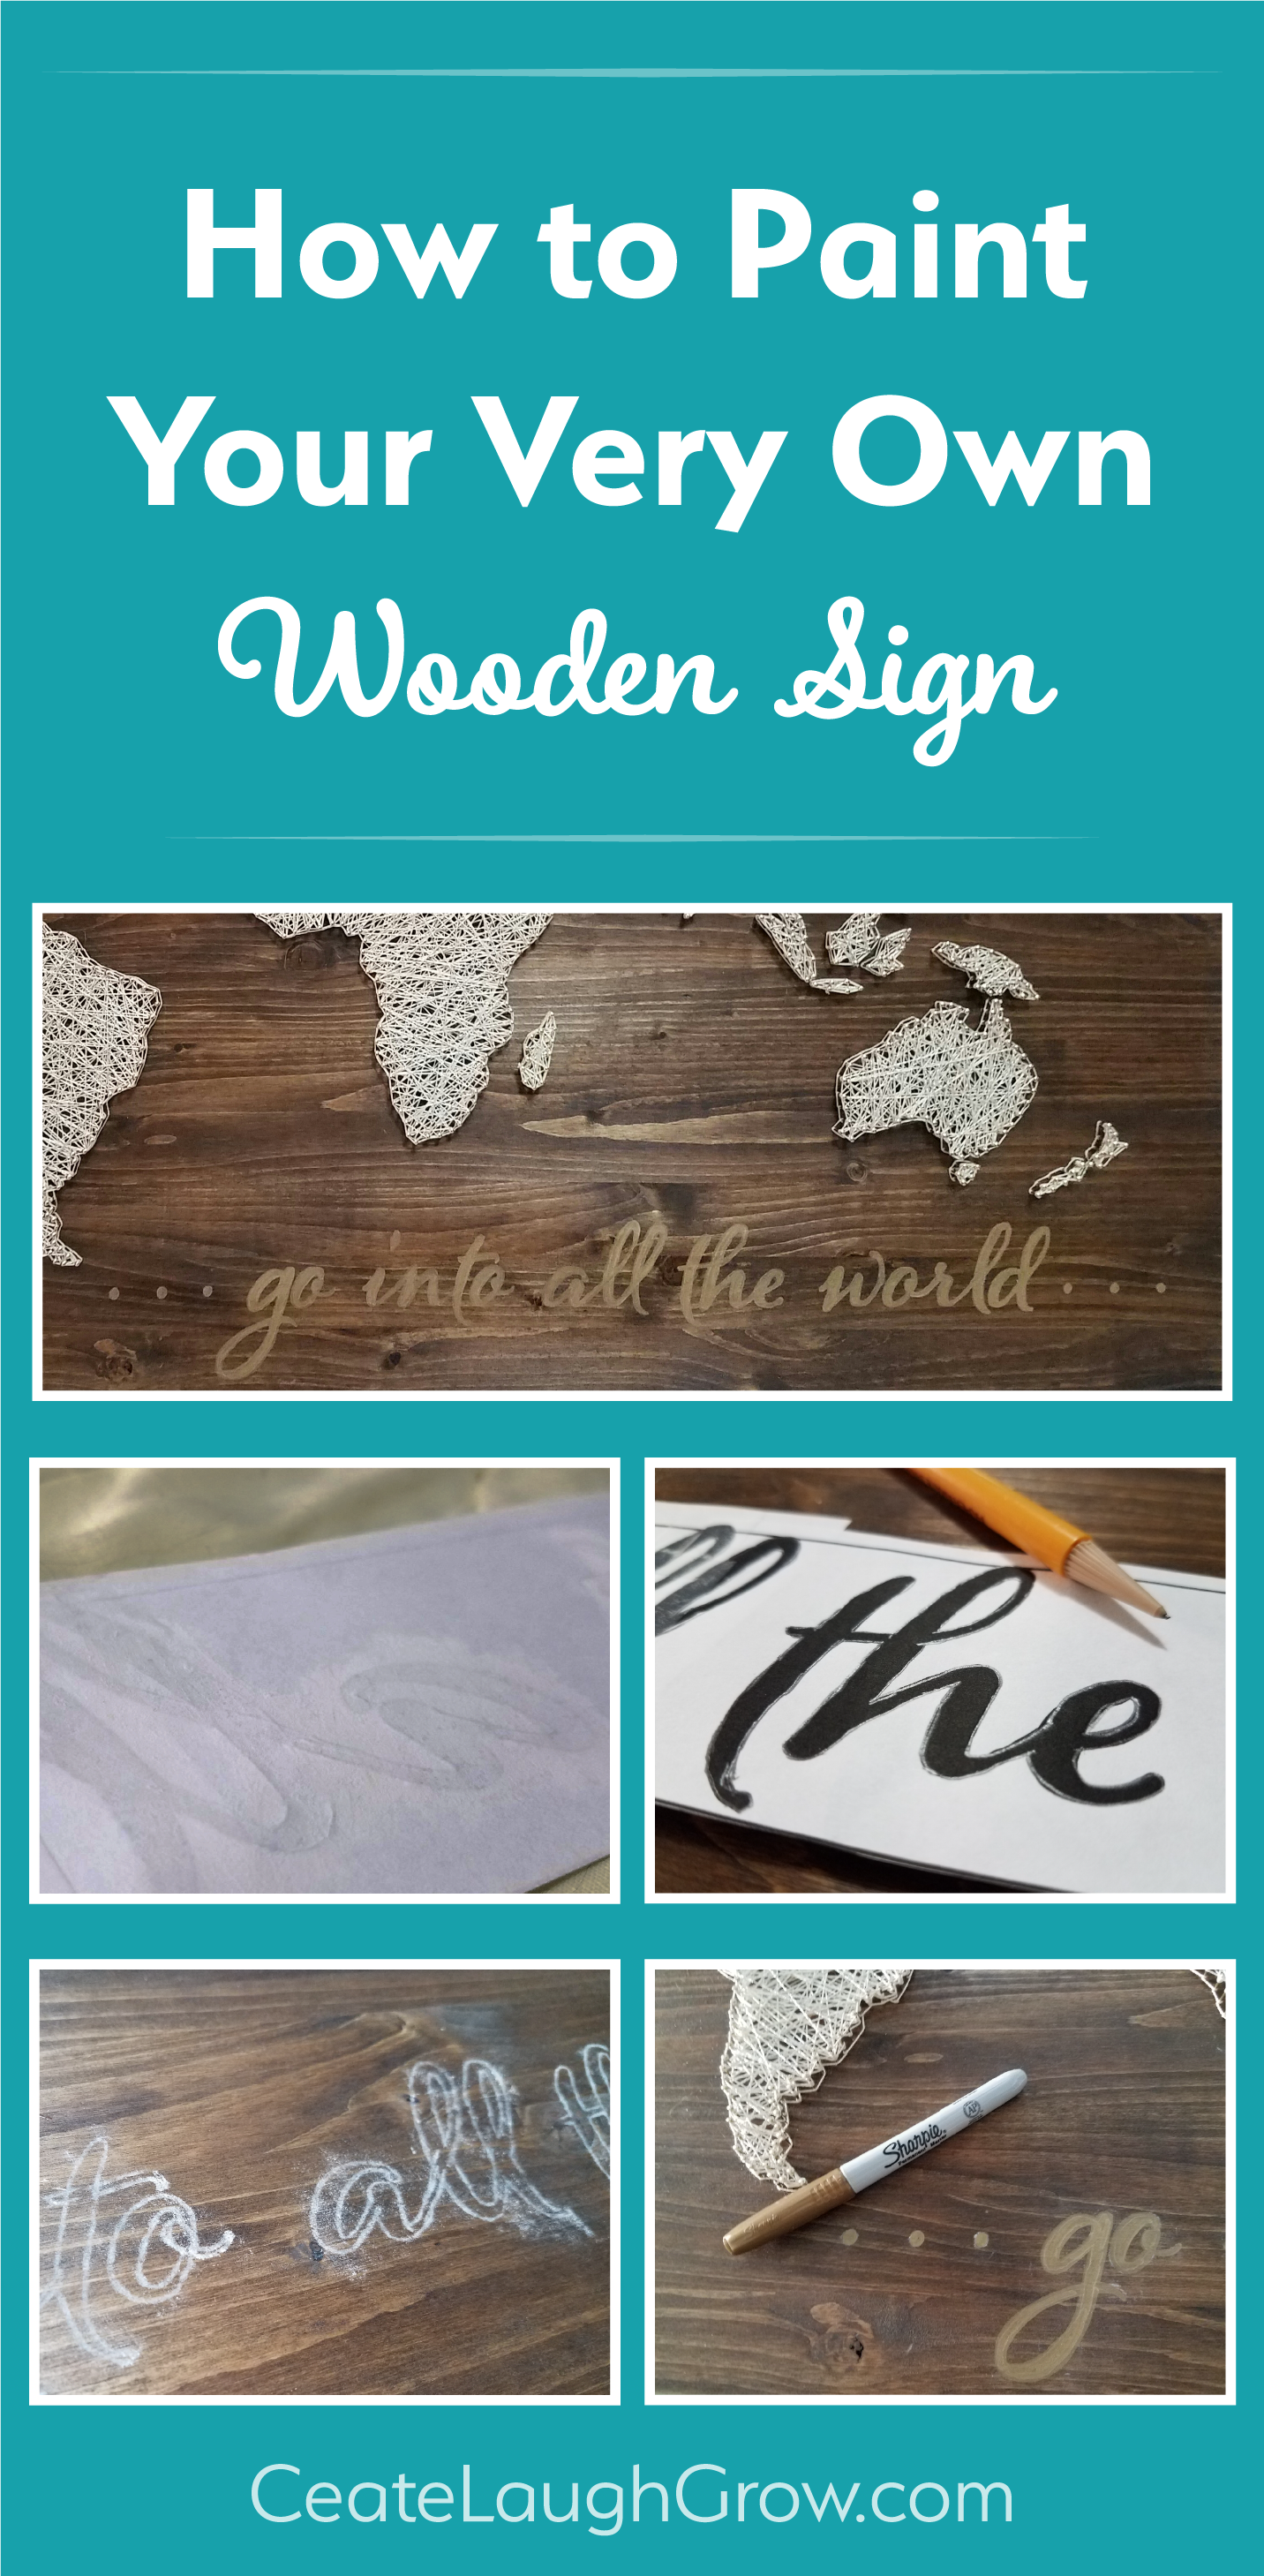 How to Make Your Own Painted Wooden Sign